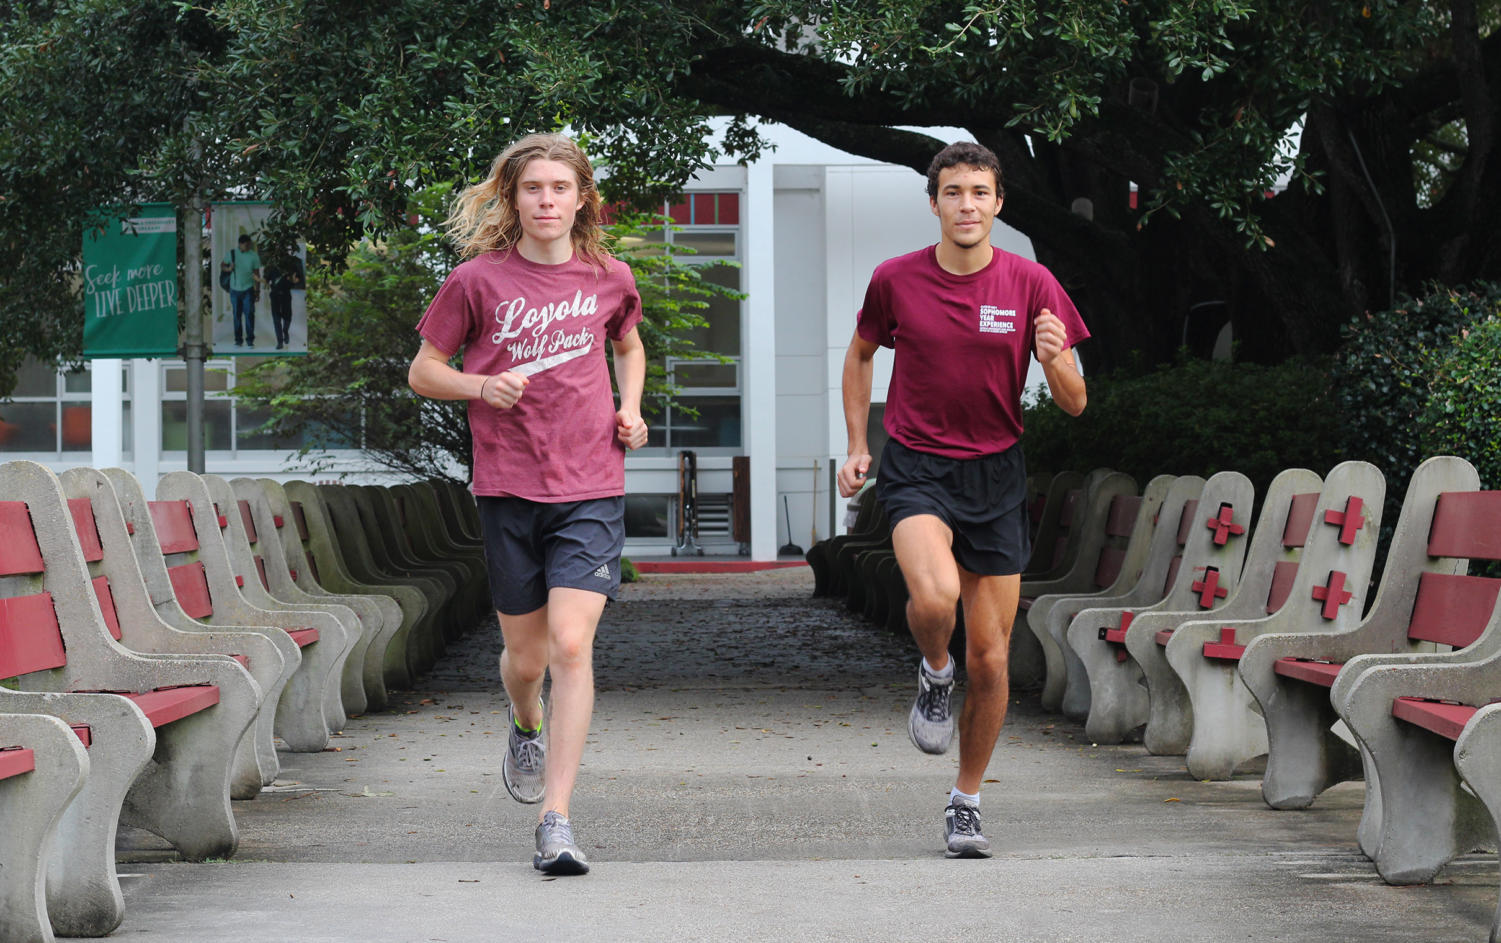 Environmental studies sophomore Walter Ramsey  (left) and pyschology sophomore Hayden Ricca (right) run in the peace quad. Ricca and Ramsey both qualified for the National Association for Intercollegiate Athletics Cross Country National Championships. Photo credit: Cristian Orellana